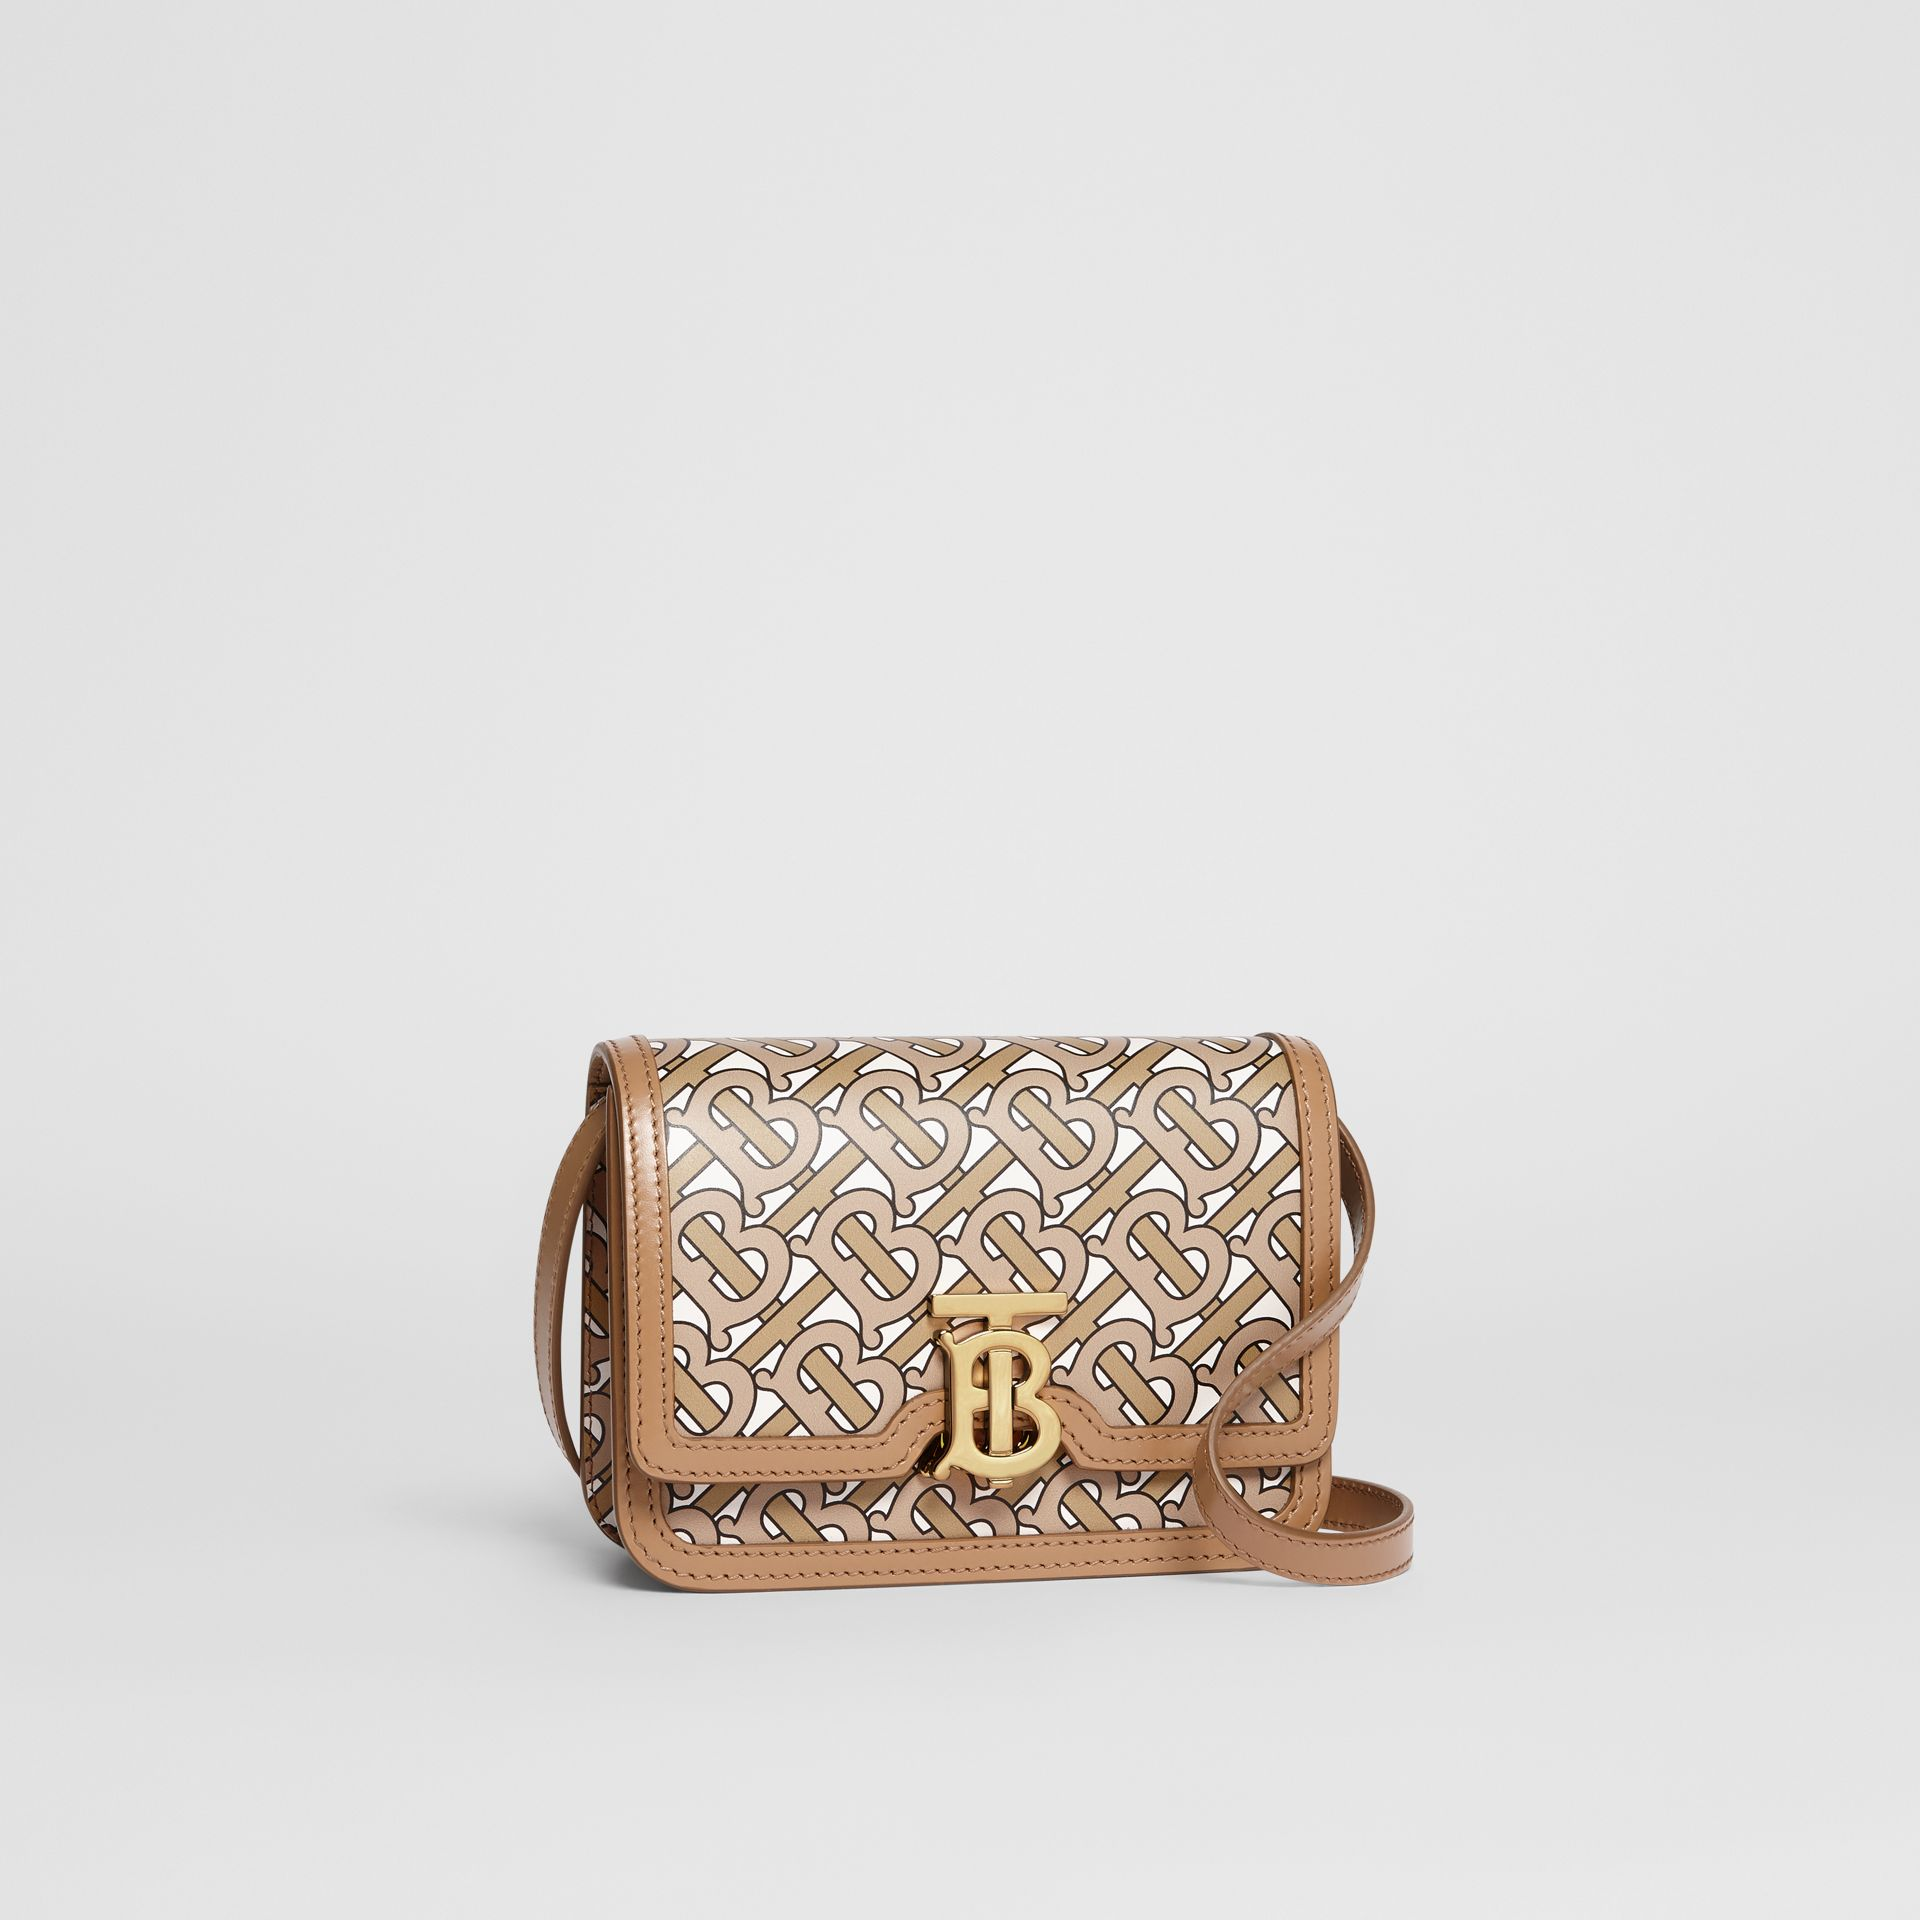 Mini sac TB en cuir Monogram (Beige) - Femme | Burberry - photo de la galerie 6